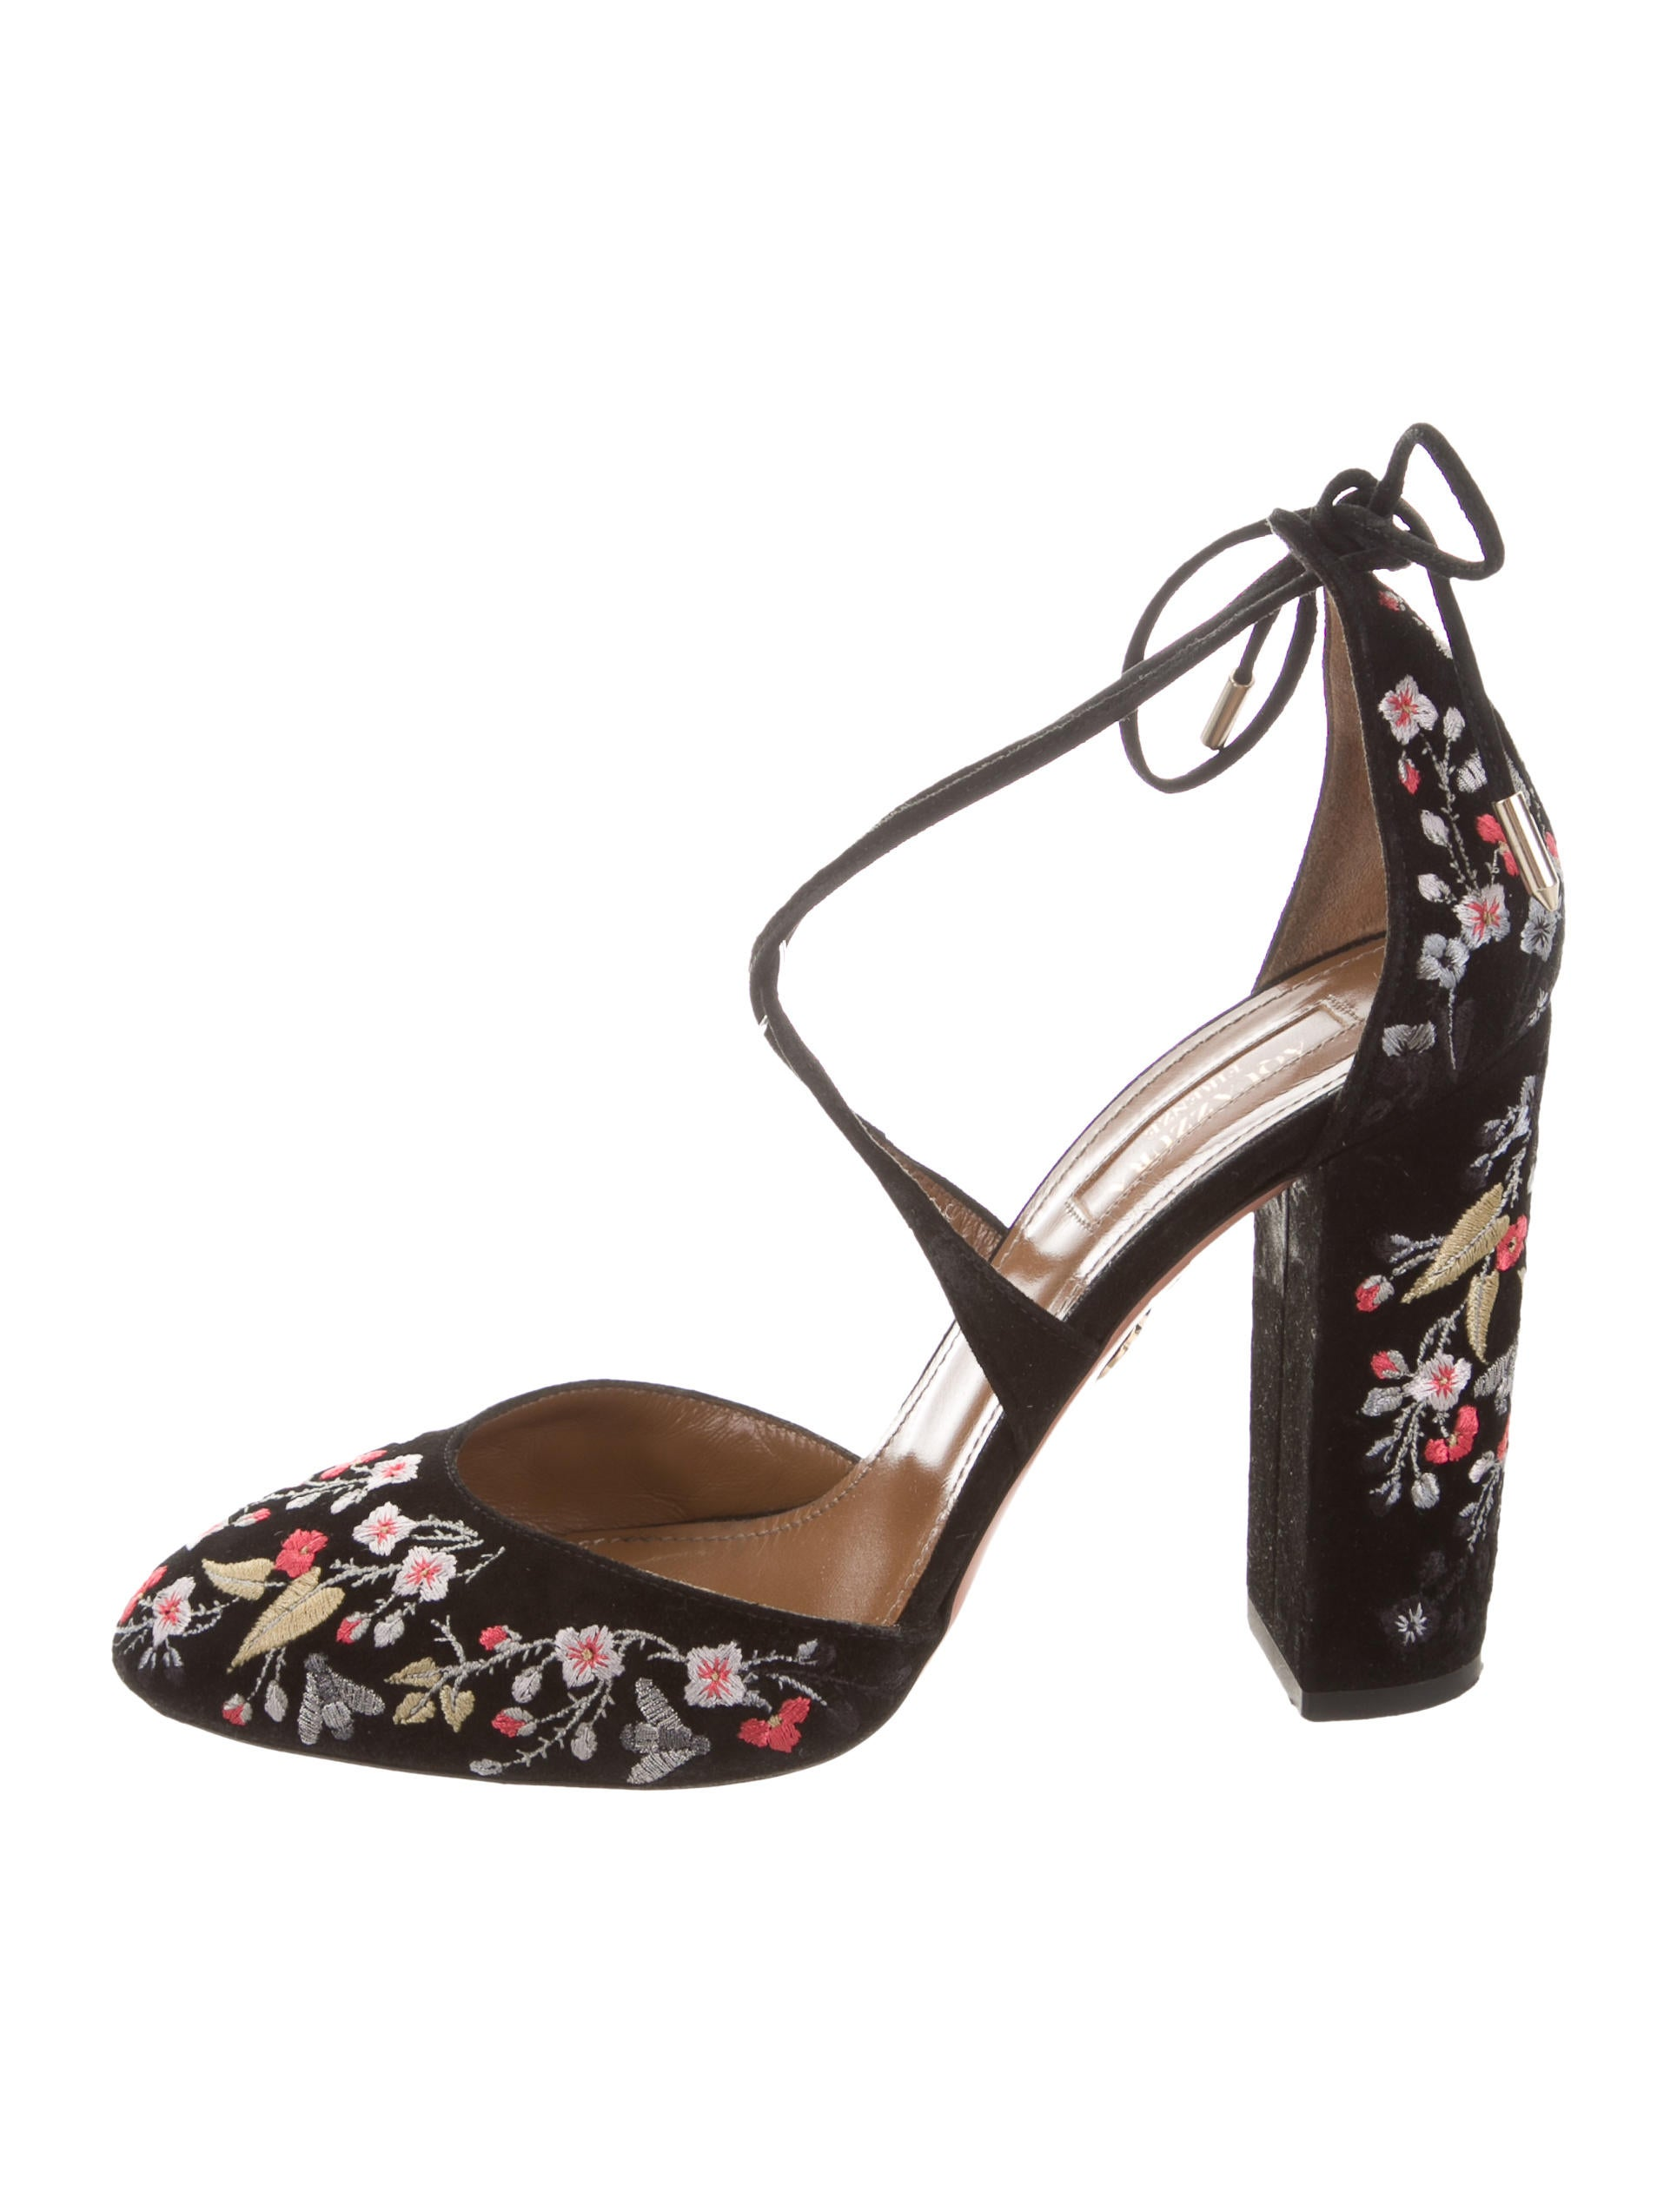 Aquazzura Karlie Floral-Embroidered Pumps outlet amazing price K0Adn